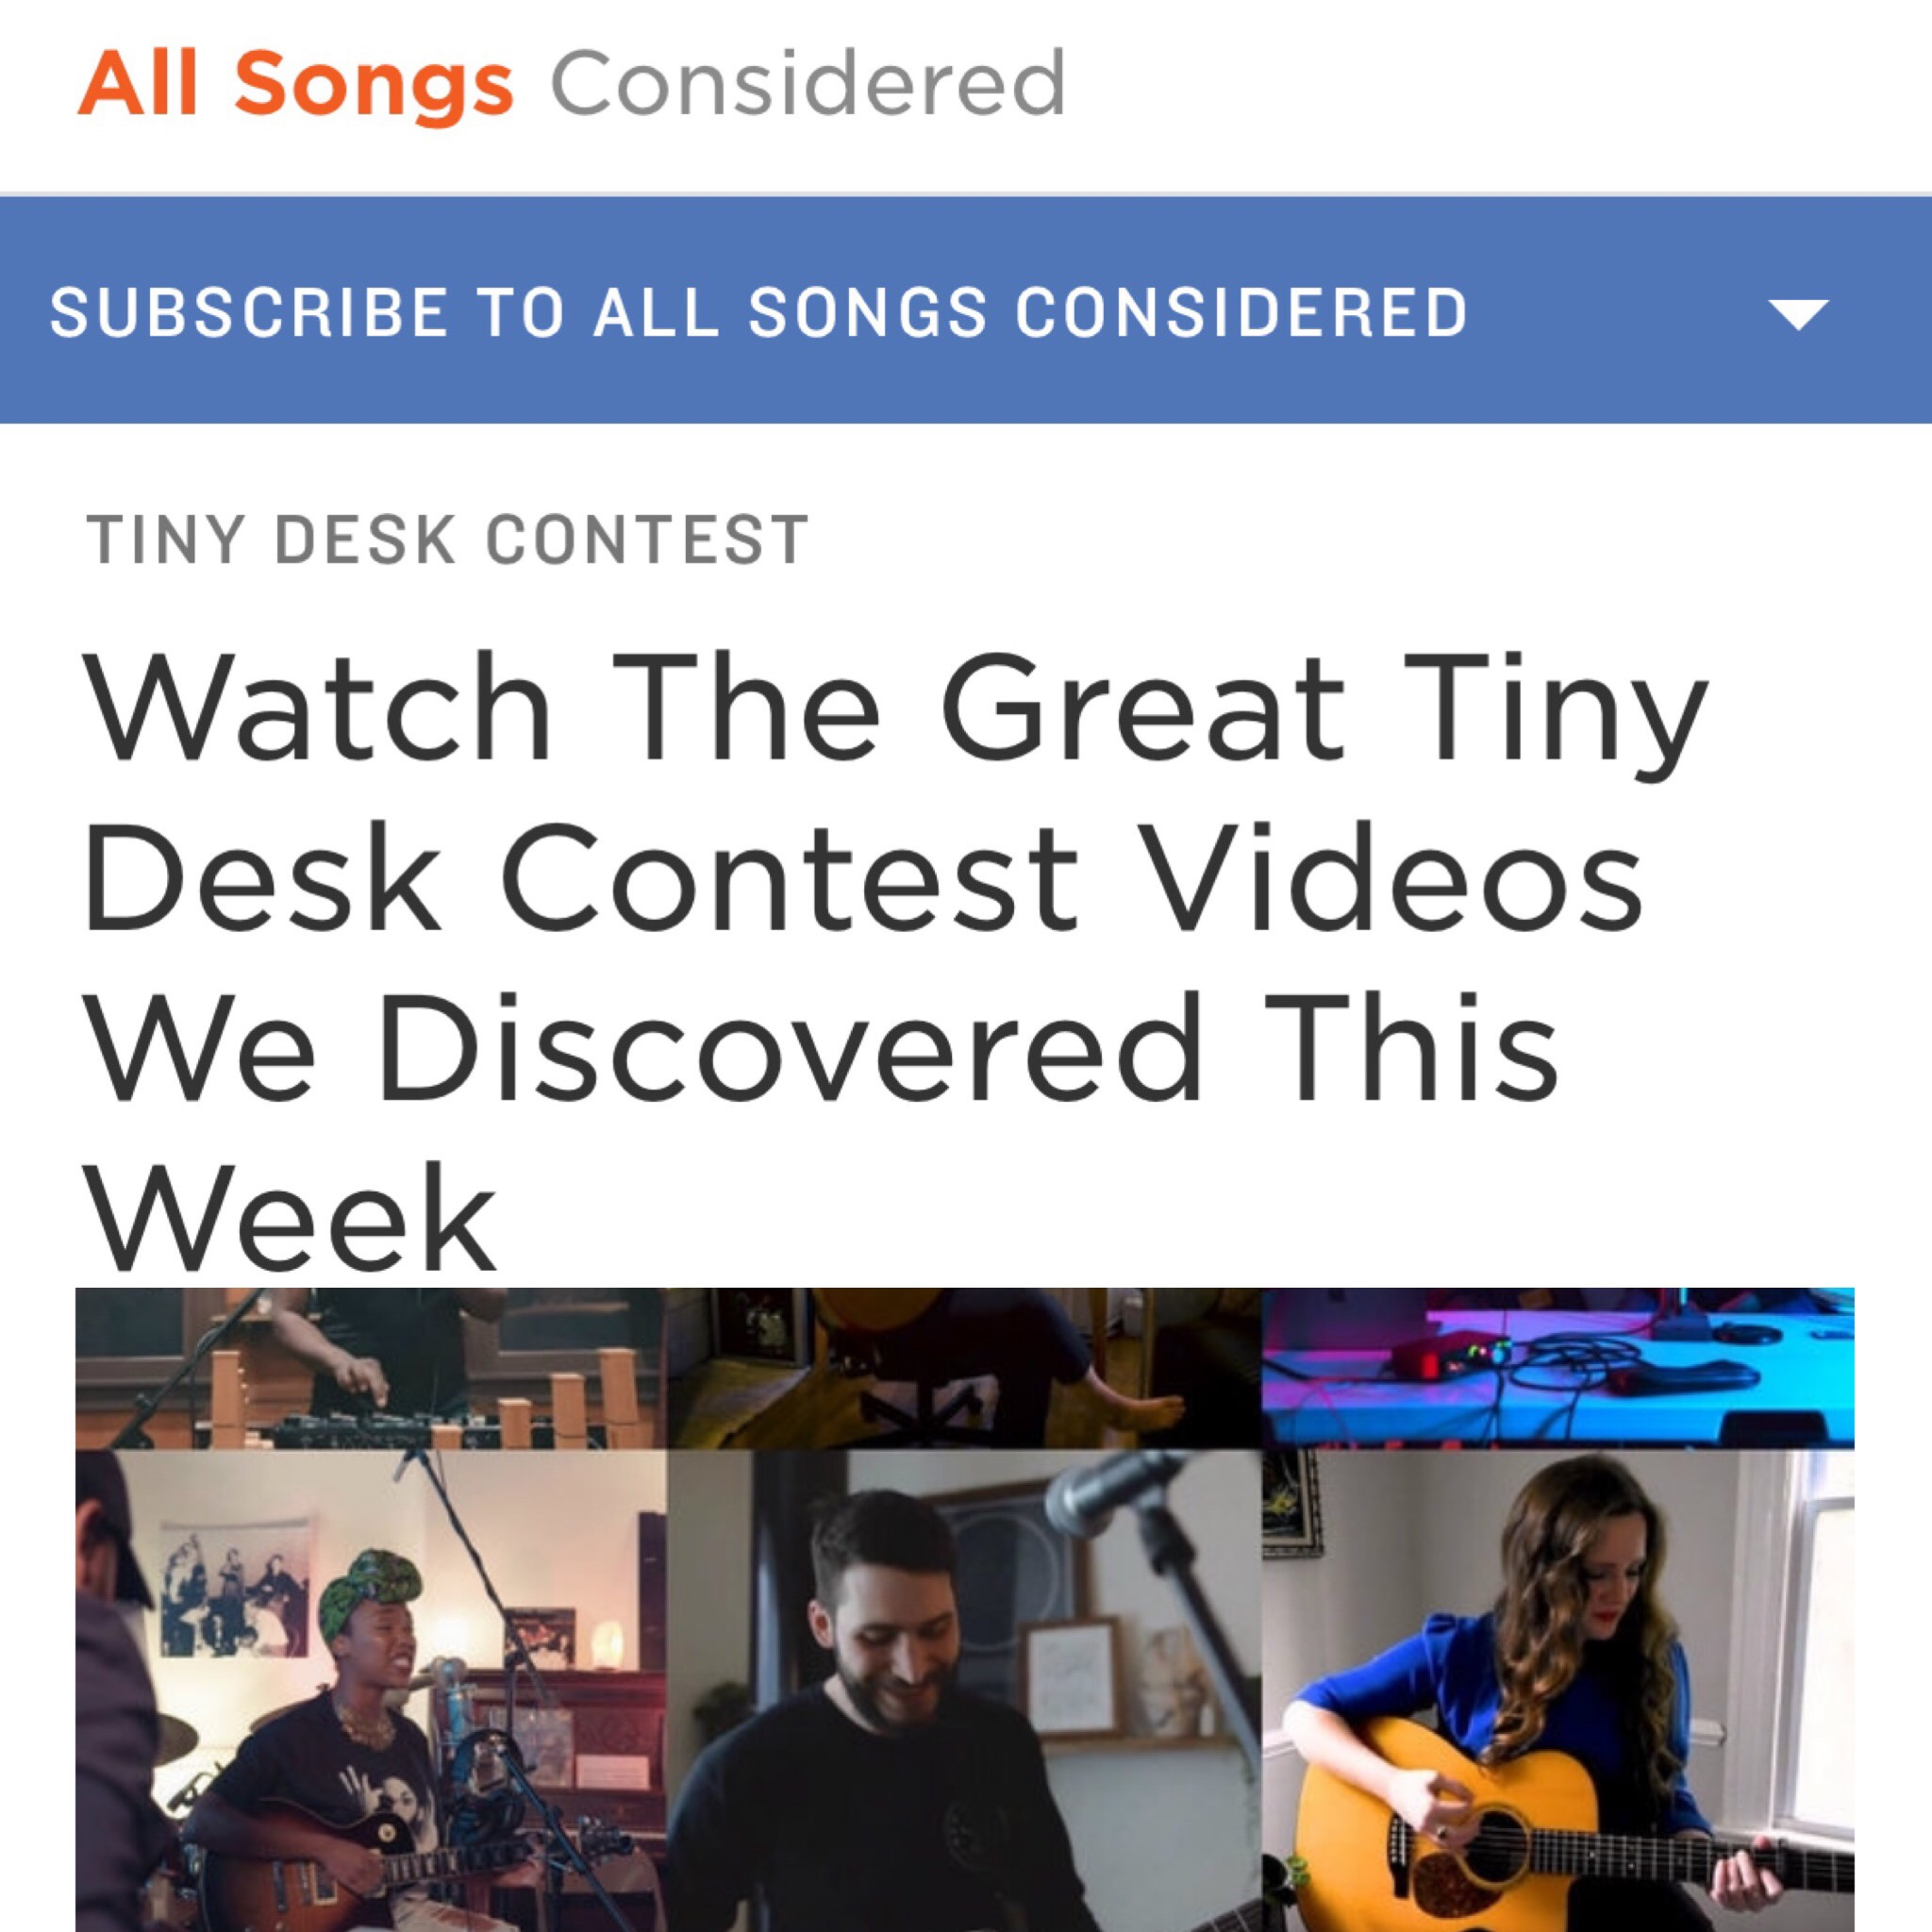 Erin gets chosen as an NPR Favorite again! - Erin's entry to the NPR Tiny Desk Competition 2019 was selected as an entry that they loved and featured on the All Songs Considered Blog. Click the picture for the video. Here's the NPR feature: https://www.npr.org/sections/allsongs/2019/05/02/718966551/watch-the-great-tiny-desk-contest-videos-we-discovered-this-week